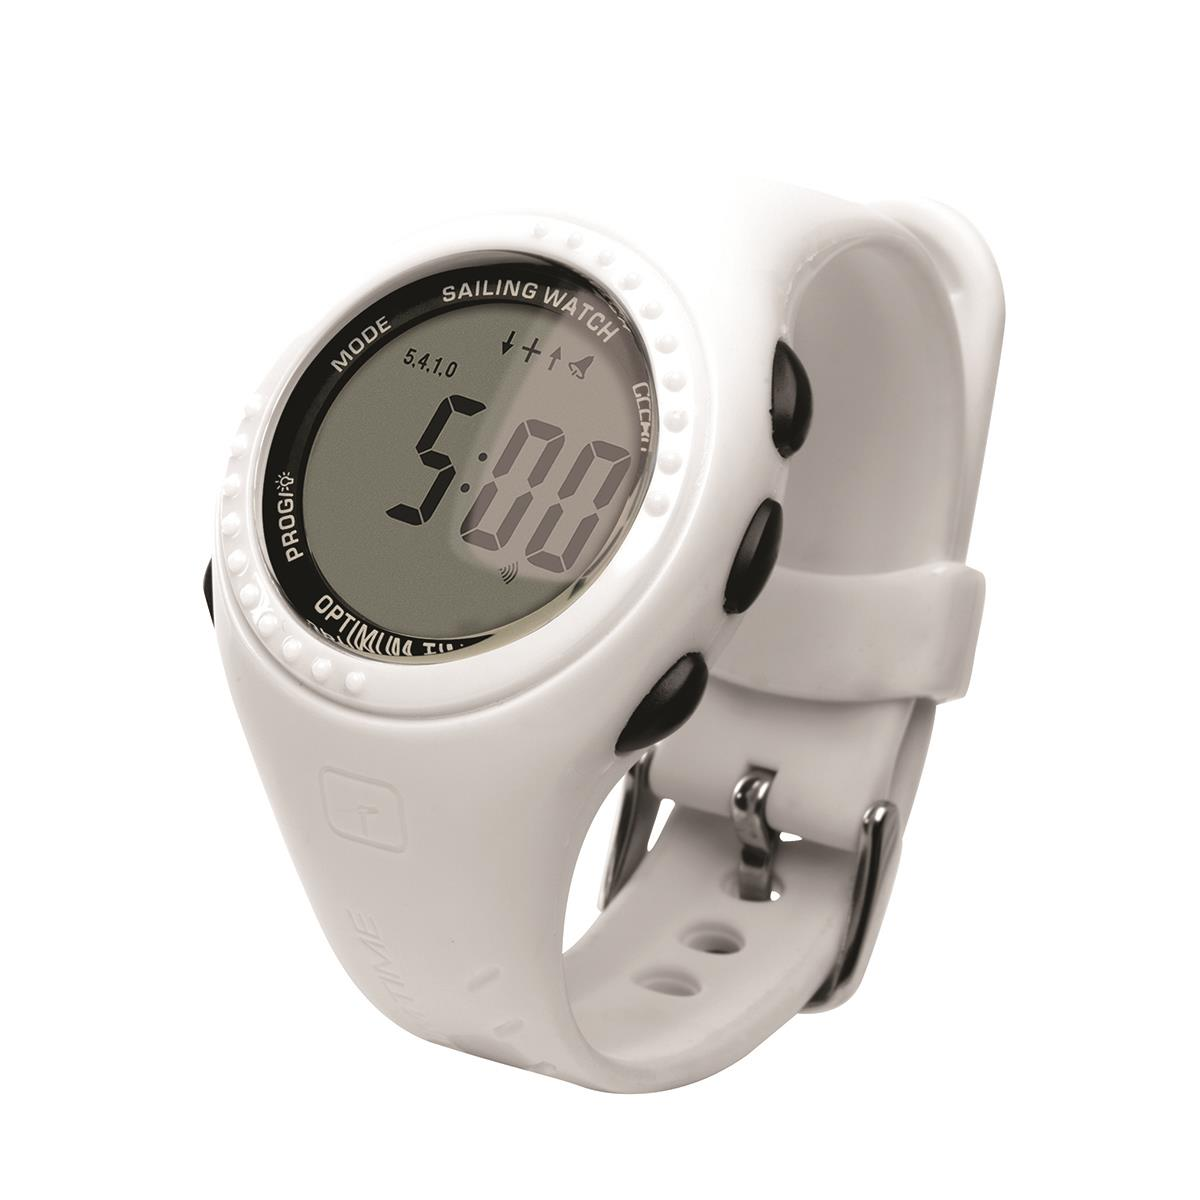 Optimum Time Series 11 Sailing Watch - White